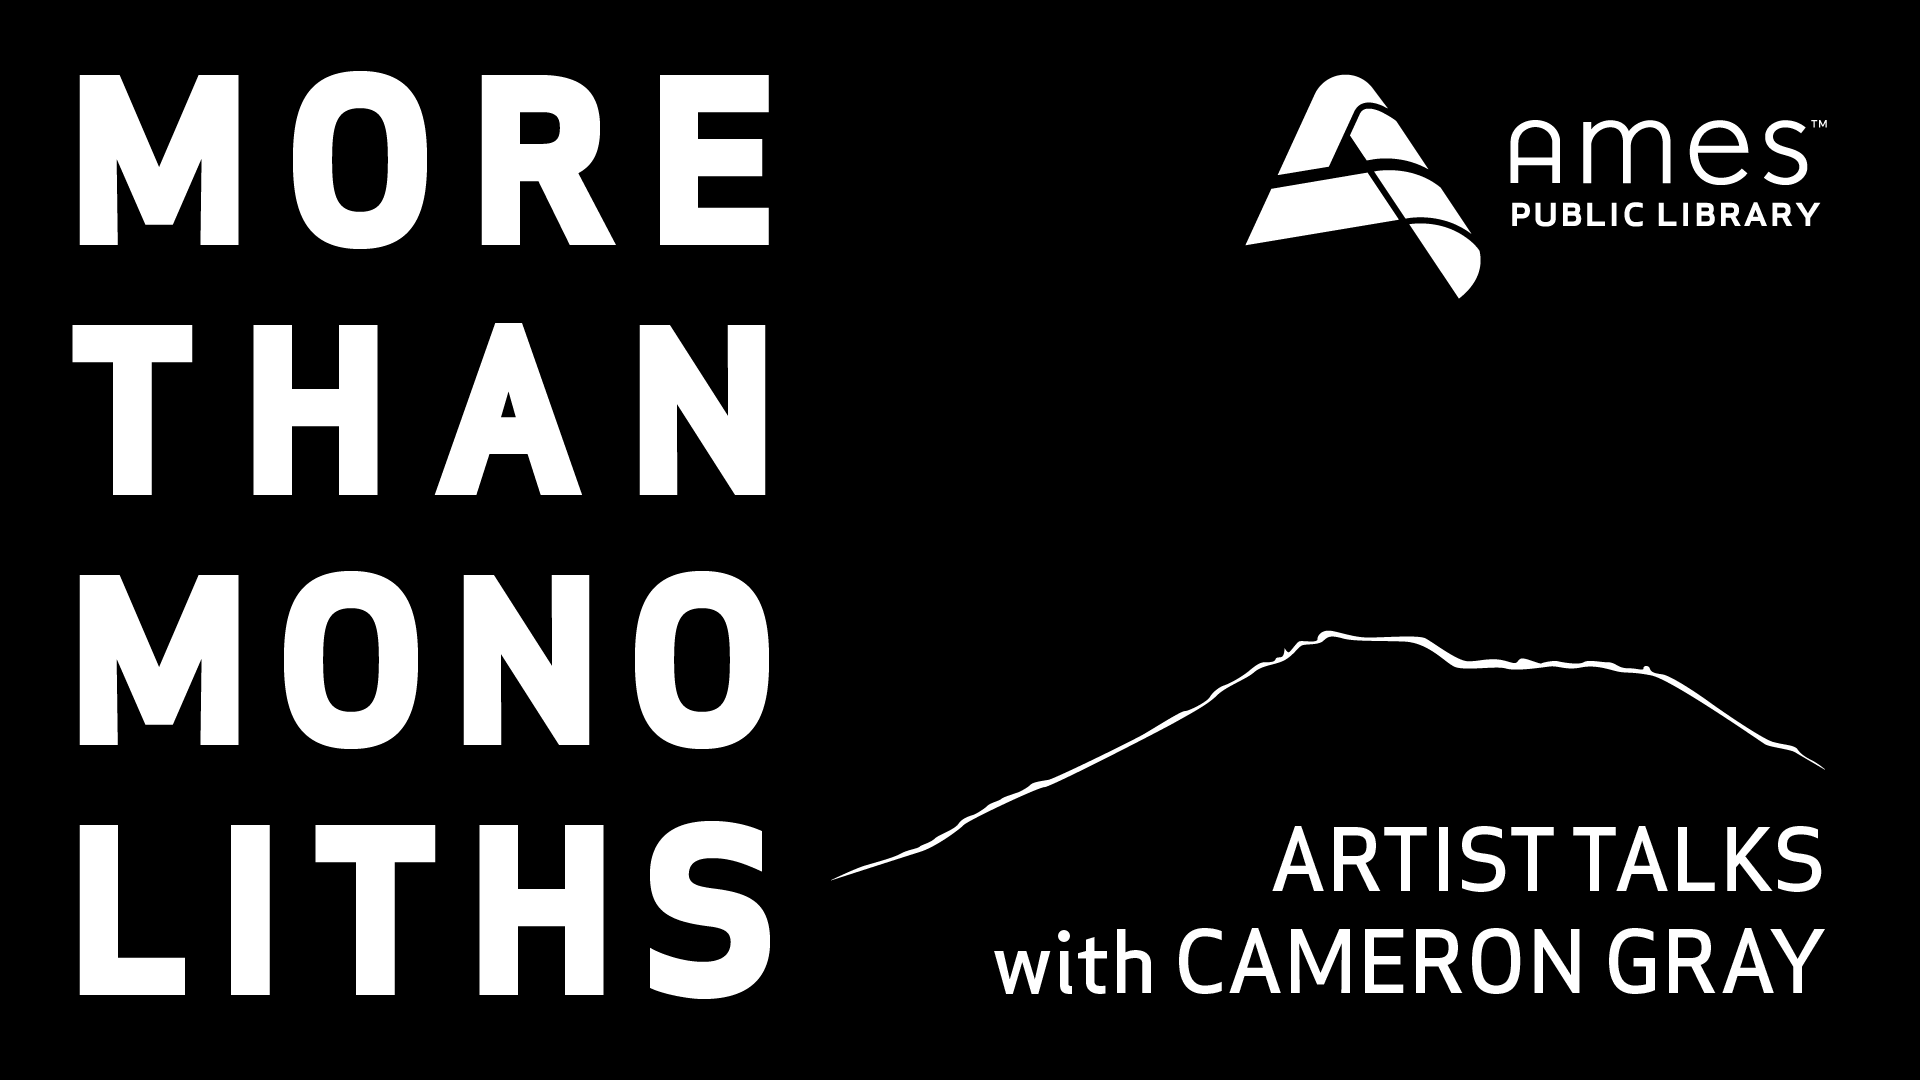 More Than Monoliths: Artist Talks with Cameron Gray